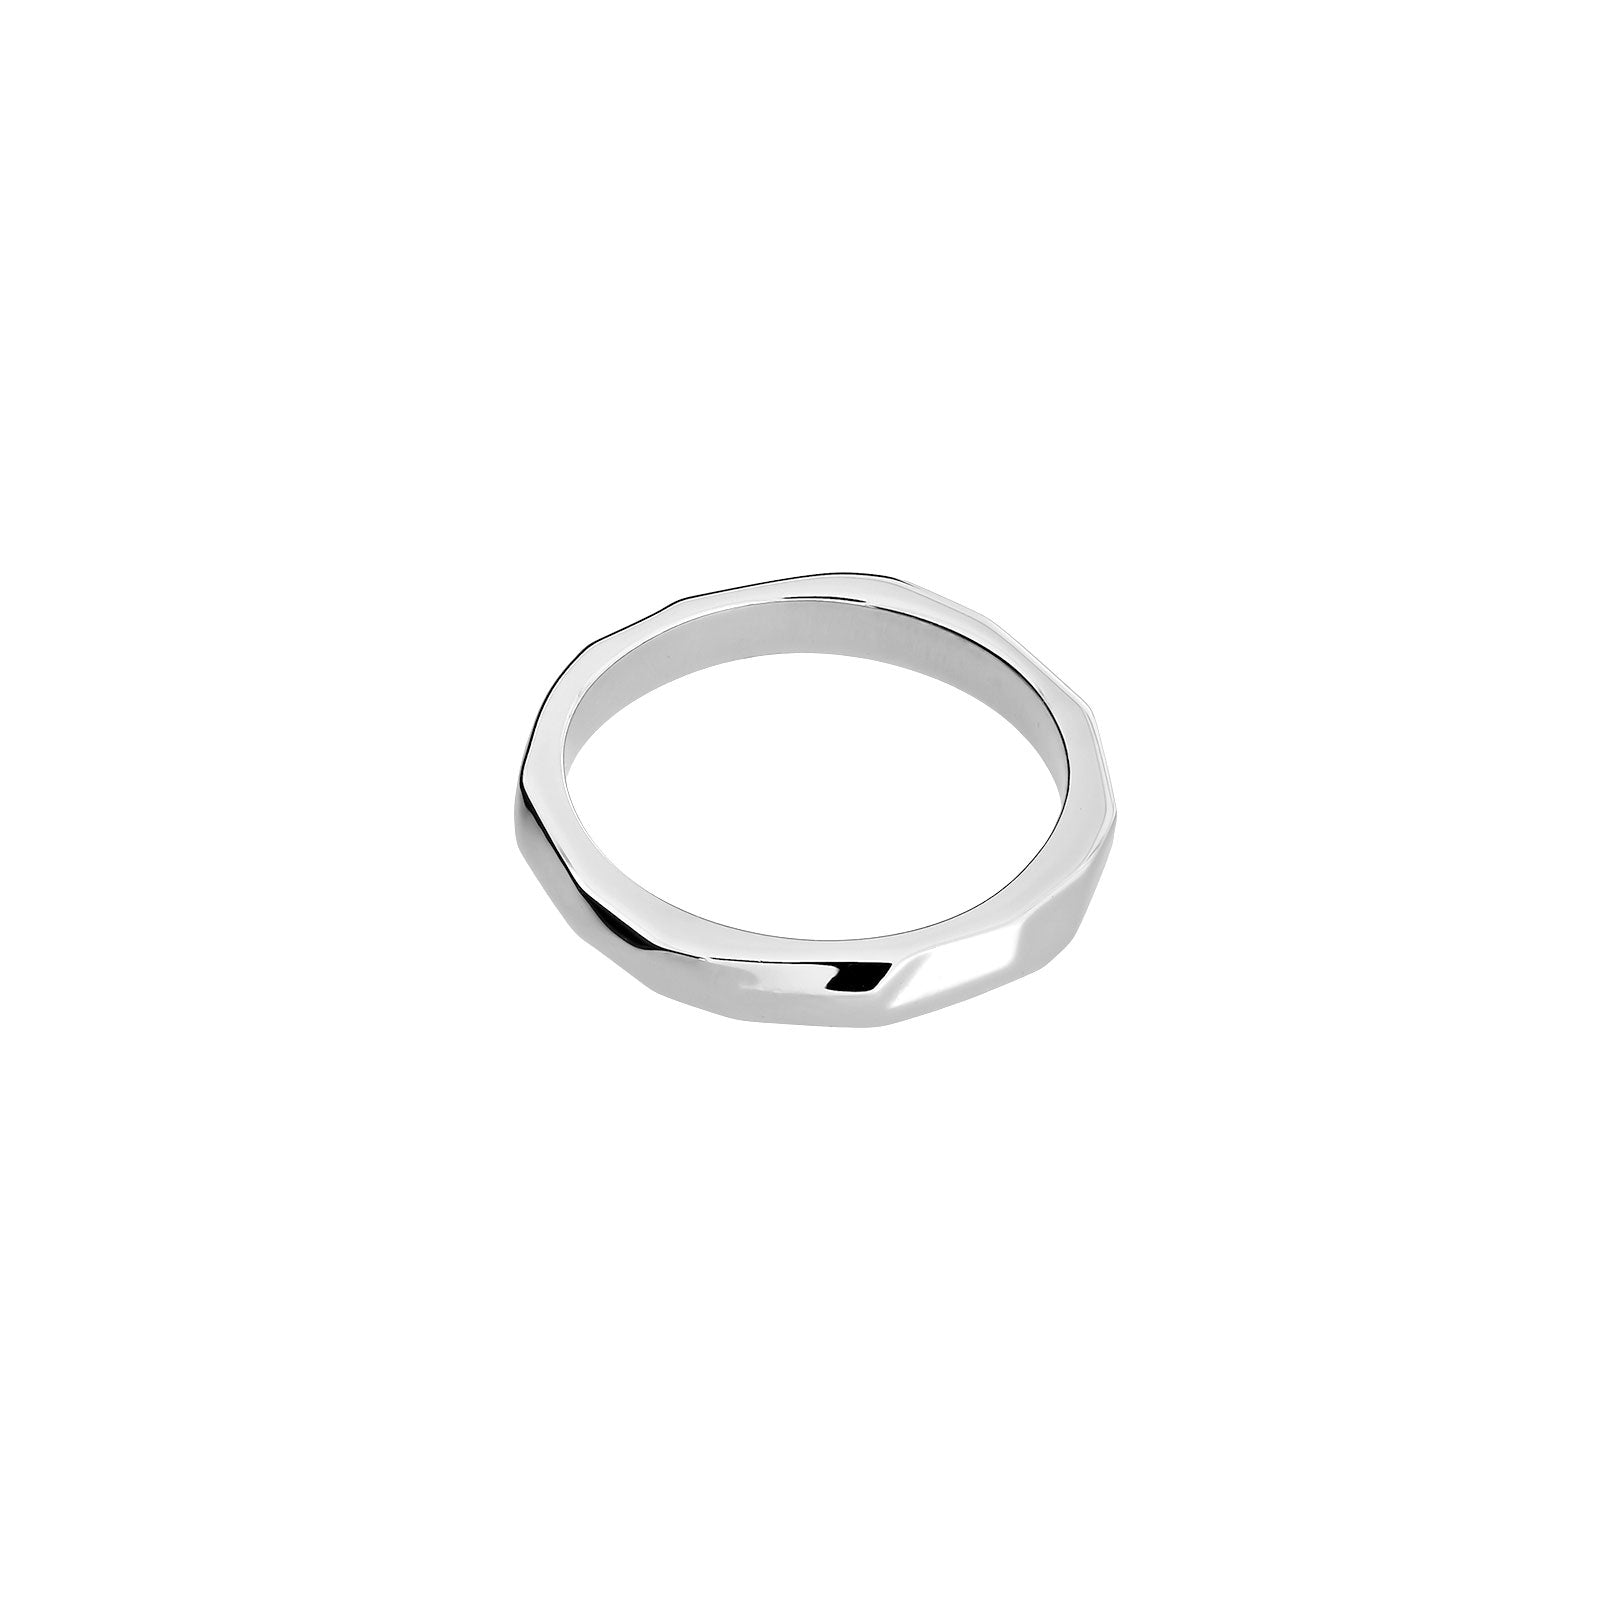 Silver Textured Ring - 3mm Width